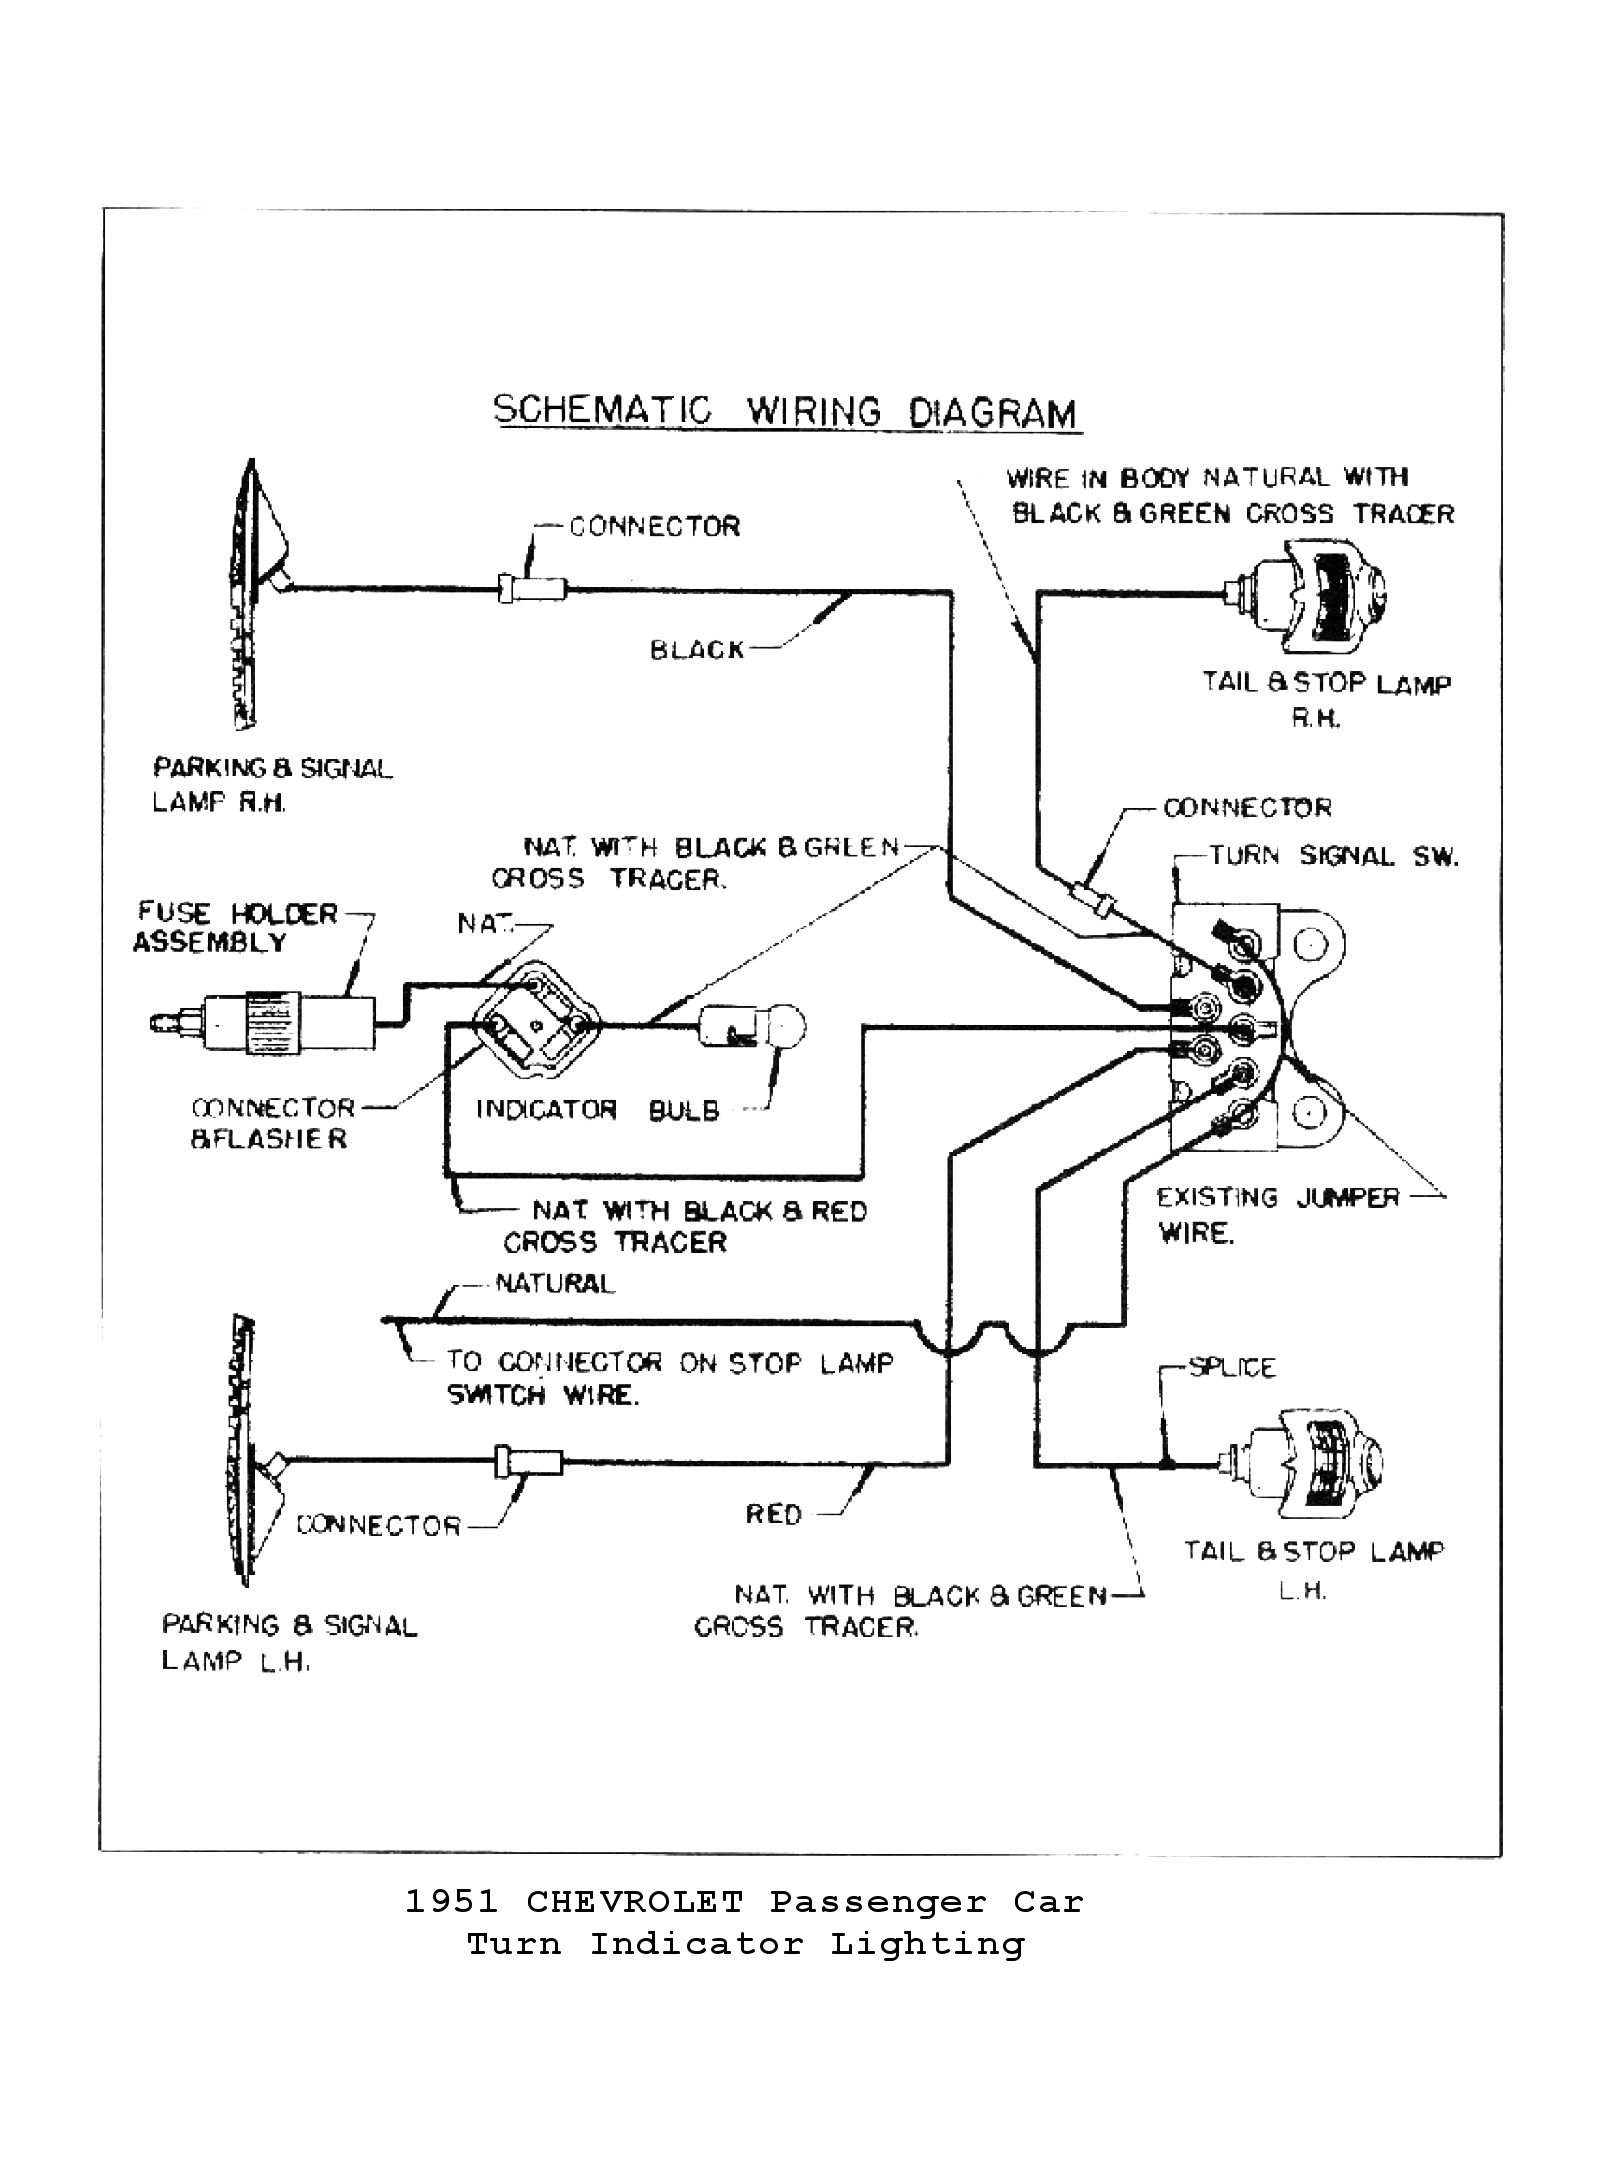 5152turnsignals chevy wiring diagrams 1959 chevy truck wiring diagram at webbmarketing.co